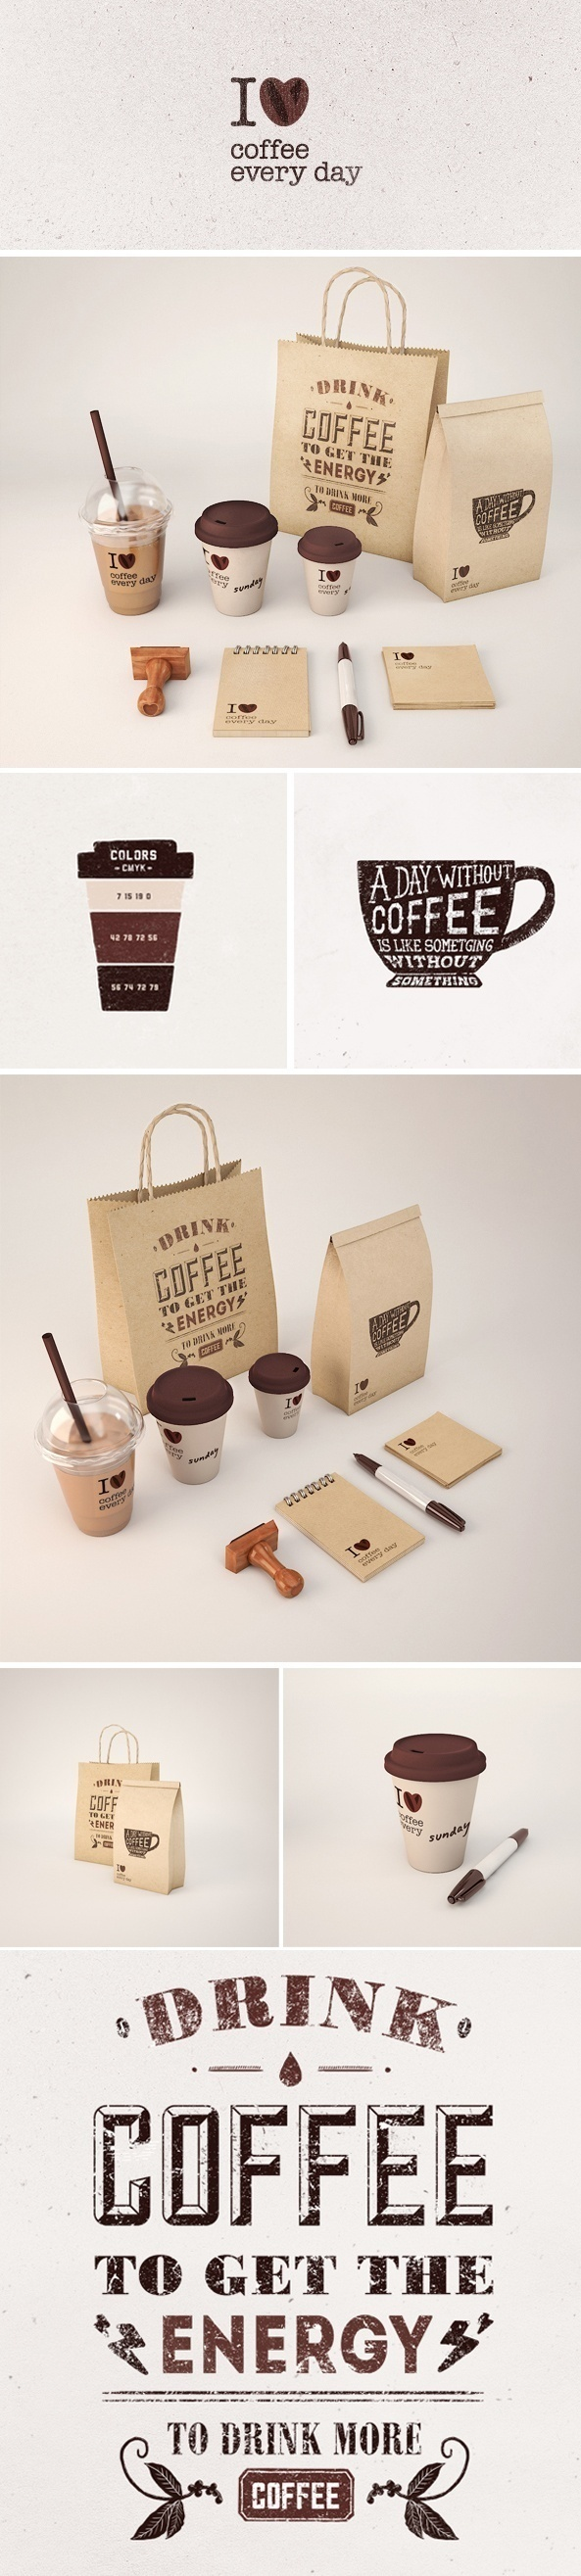 Let's meet for coffee #identity #packaging #branding PD